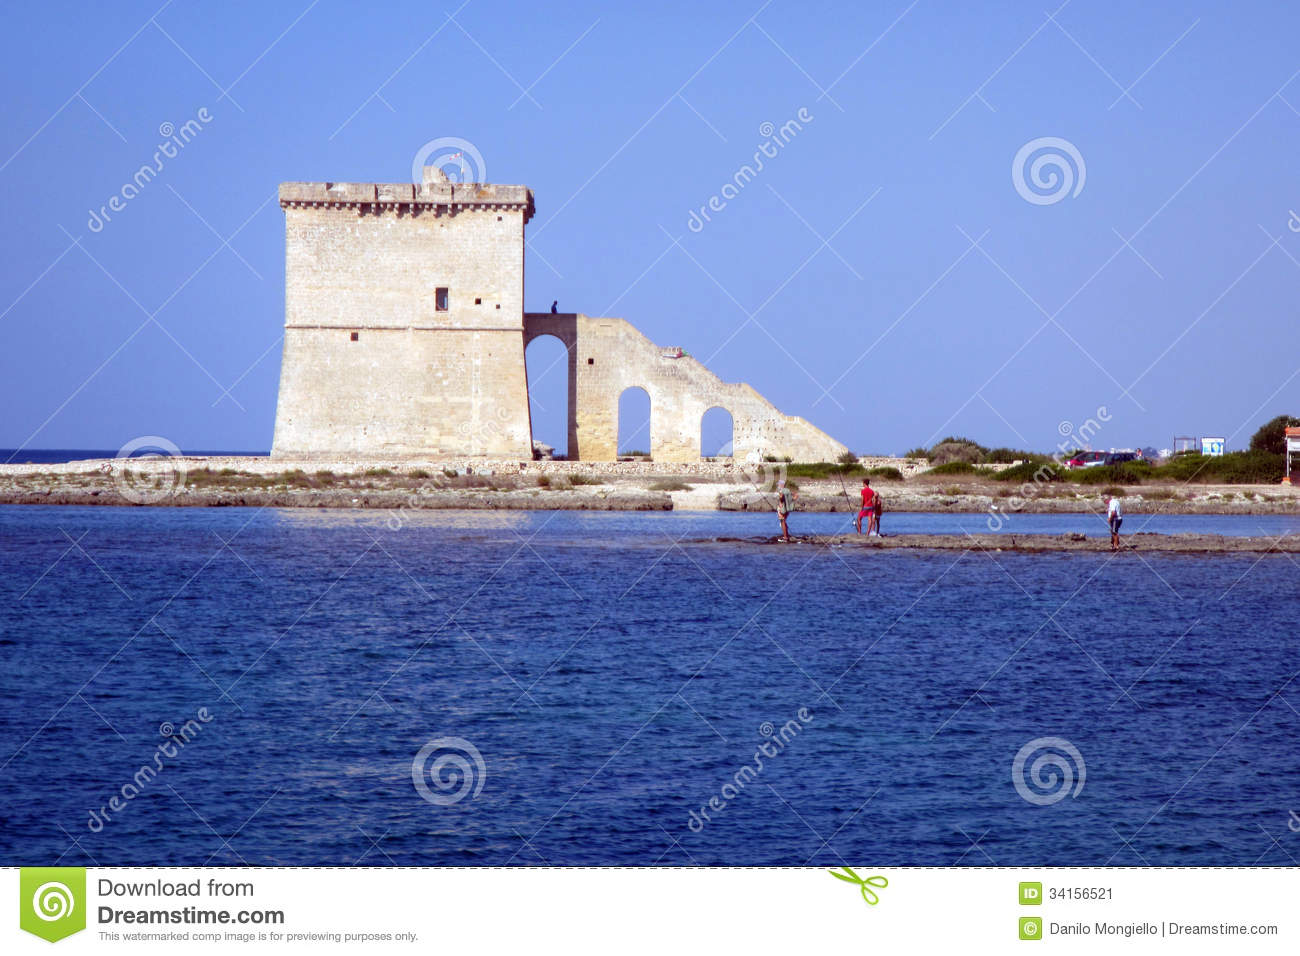 Torre Lapillo Italy  City new picture : The old historic saracen tower on the sea torre lapillo in italy.